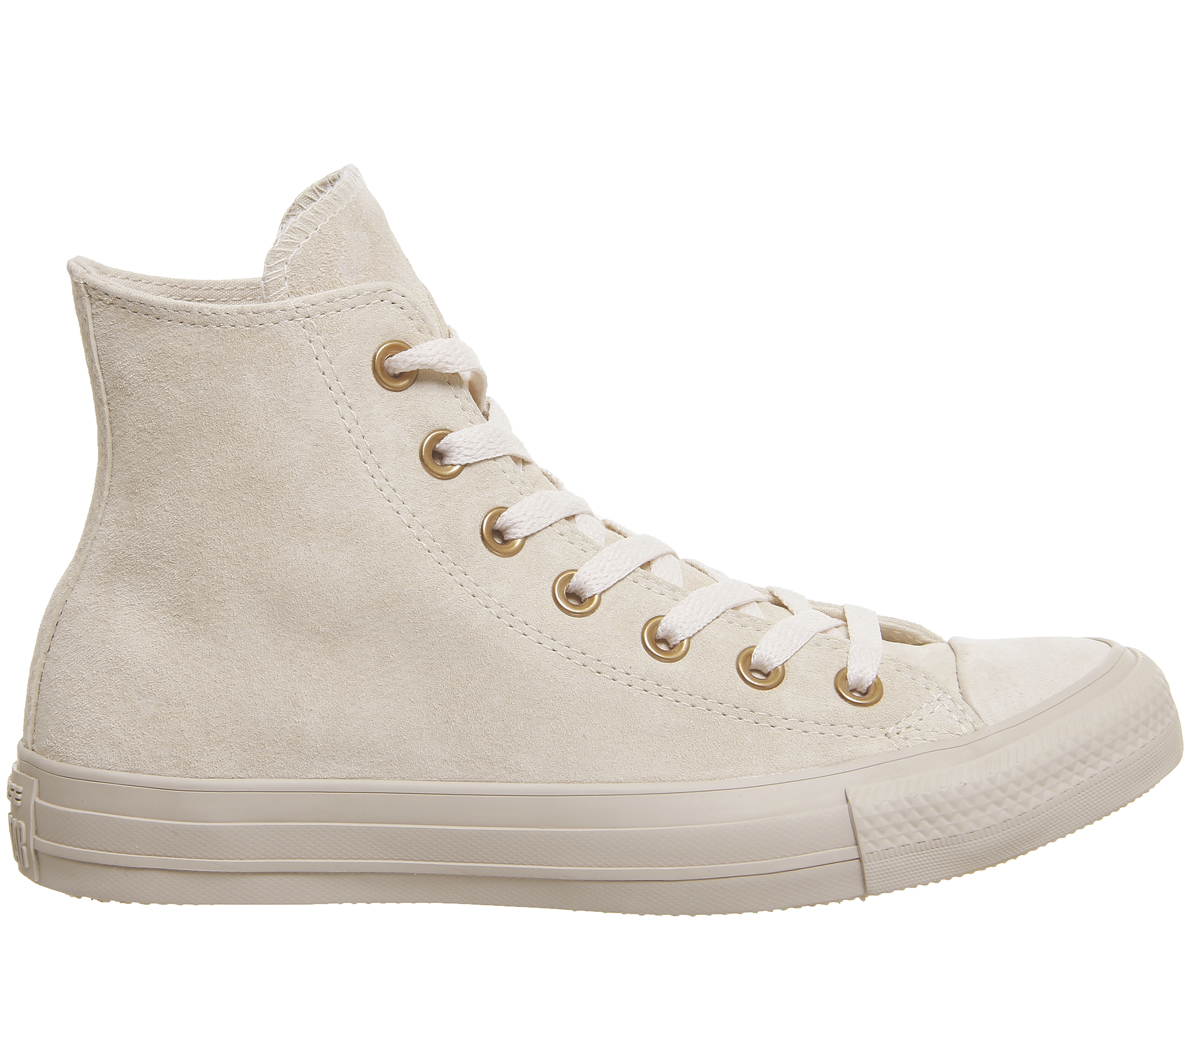 ac397f09f696d3 Womens Converse All Star Hi Leather PASTEL ROSE TAN EXCLUSIVE ...